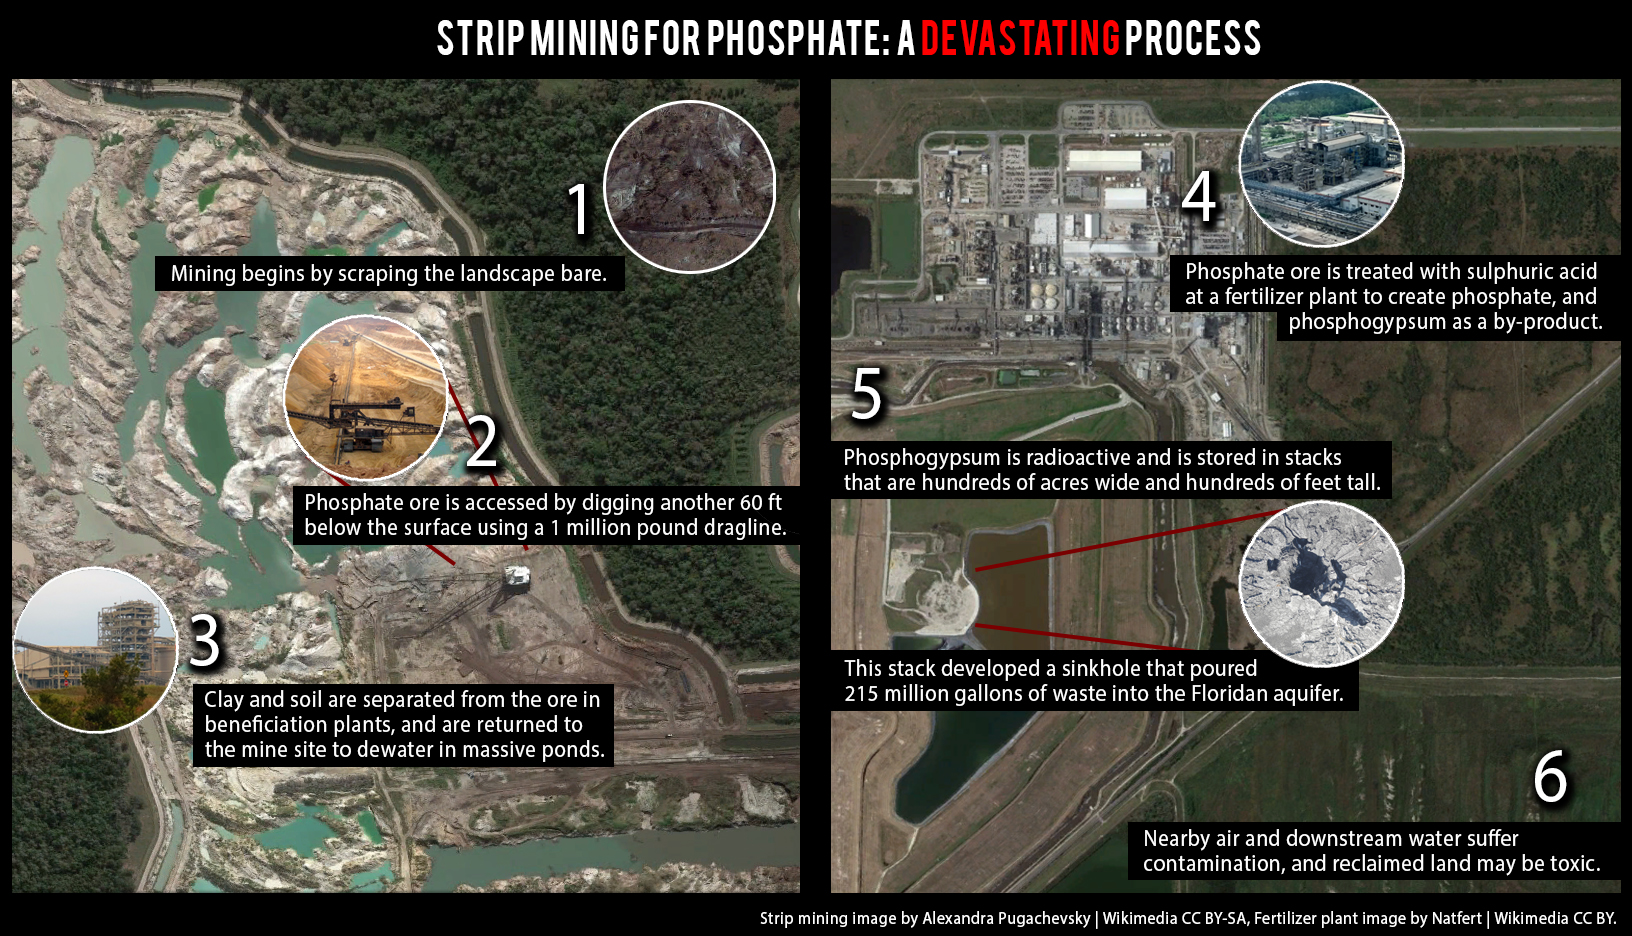 Facts about strip mining